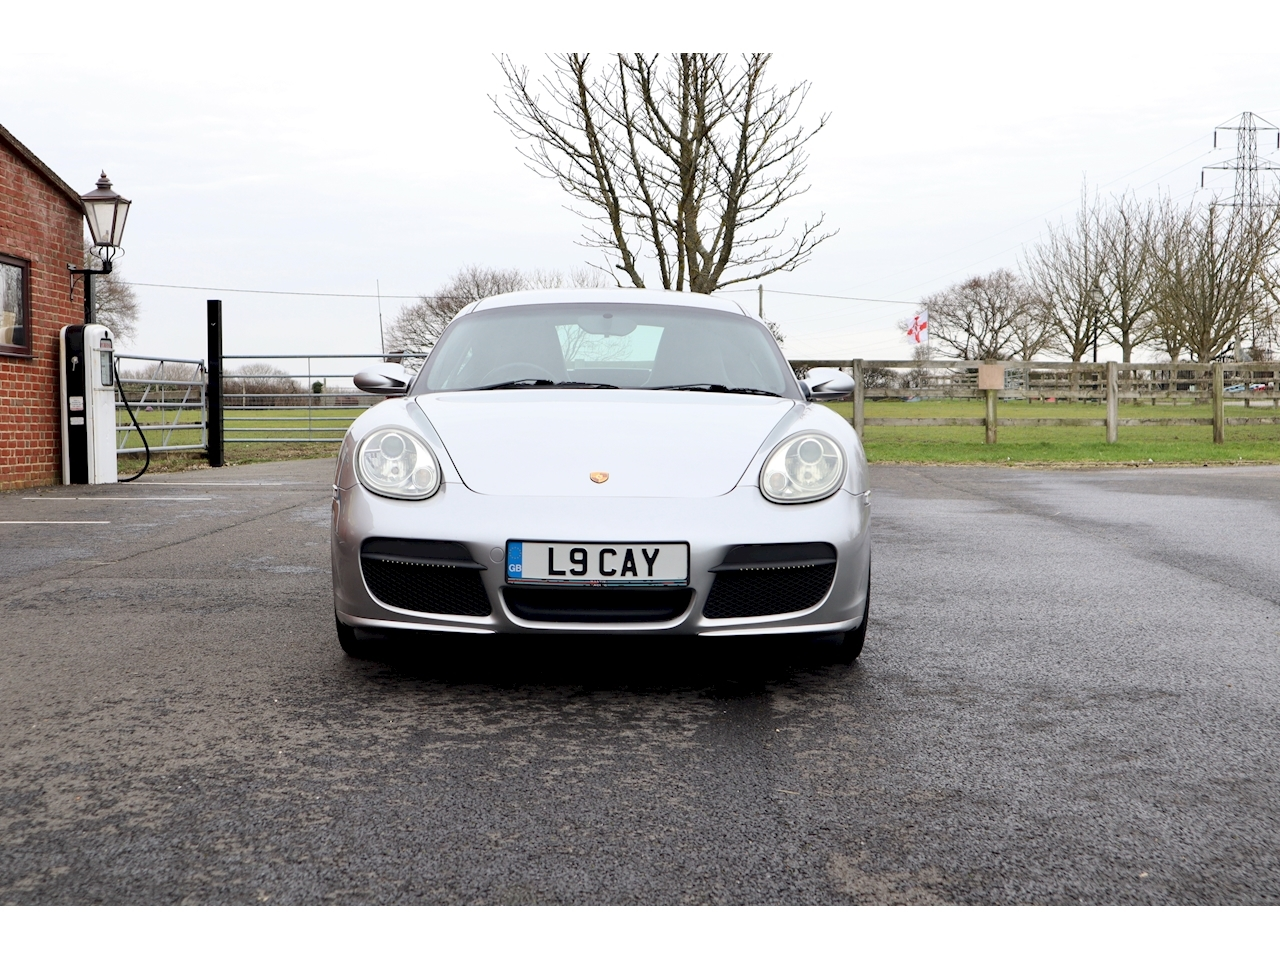 Porsche Cayman 987 S Coupe 3.4 Manual Petrol